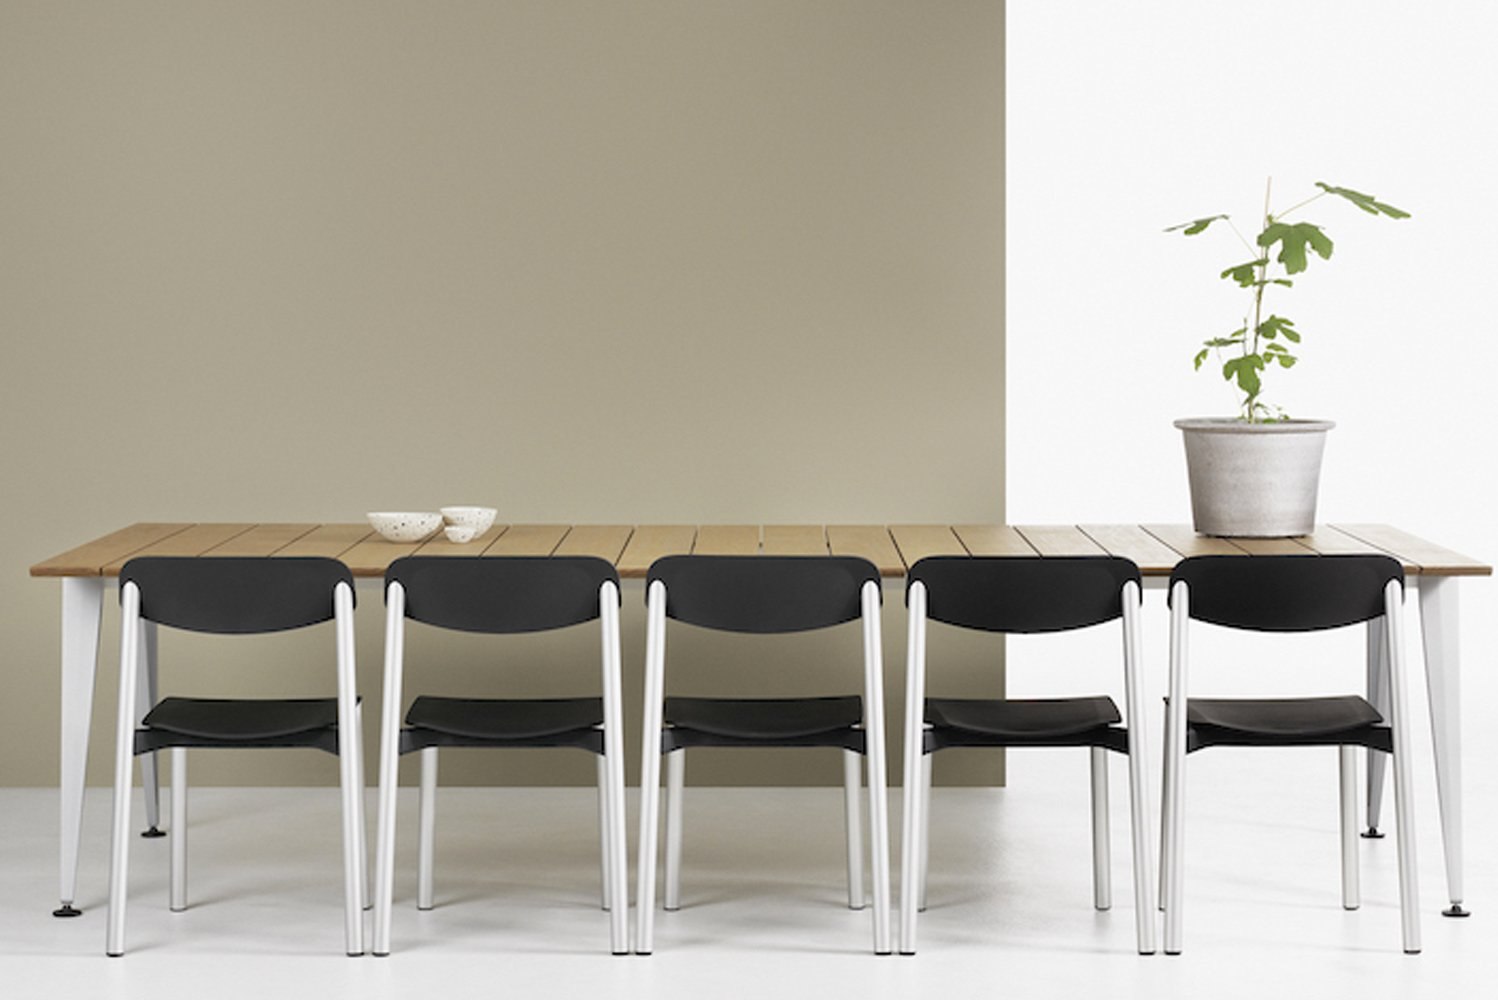 Each chair features a seat and seat back made of polypropylene that can work both indoors or outdoors.